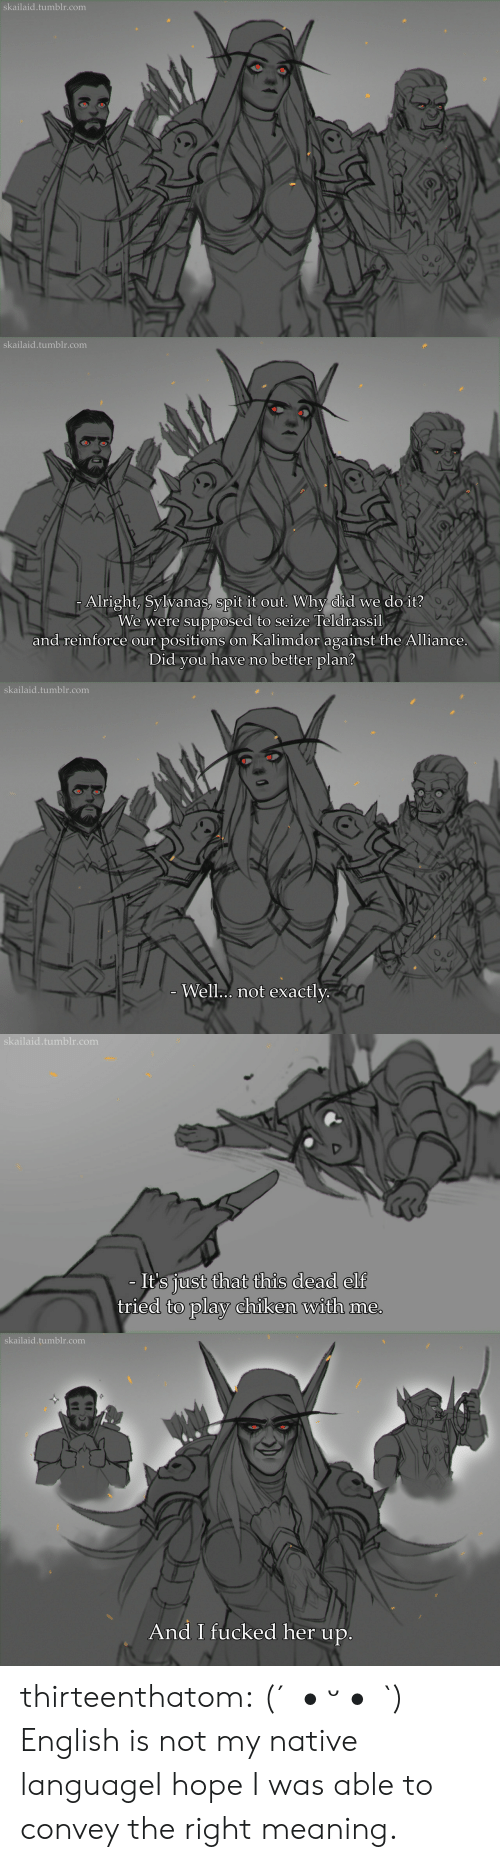 spit: skailaid.tumblr.com   skailaid.tumblr.com  Alright, Sylvanas, spit it out. Why did we do it?  We were supposed to seize Teldrassil  and reinforce our positions on Kalimdor against the Alliance.  Did you have no better plan?   skailaid.tumblr.com  - Well.. not exactly.   skailaid.tumblr.com  - It's just that this dead elf  tried to play chiken with me.   skailaid.tumblr.com  And I fucked her up. thirteenthatom:    (´。• ᵕ •。`)   English is not my native languageI hope I was able to convey the right meaning.